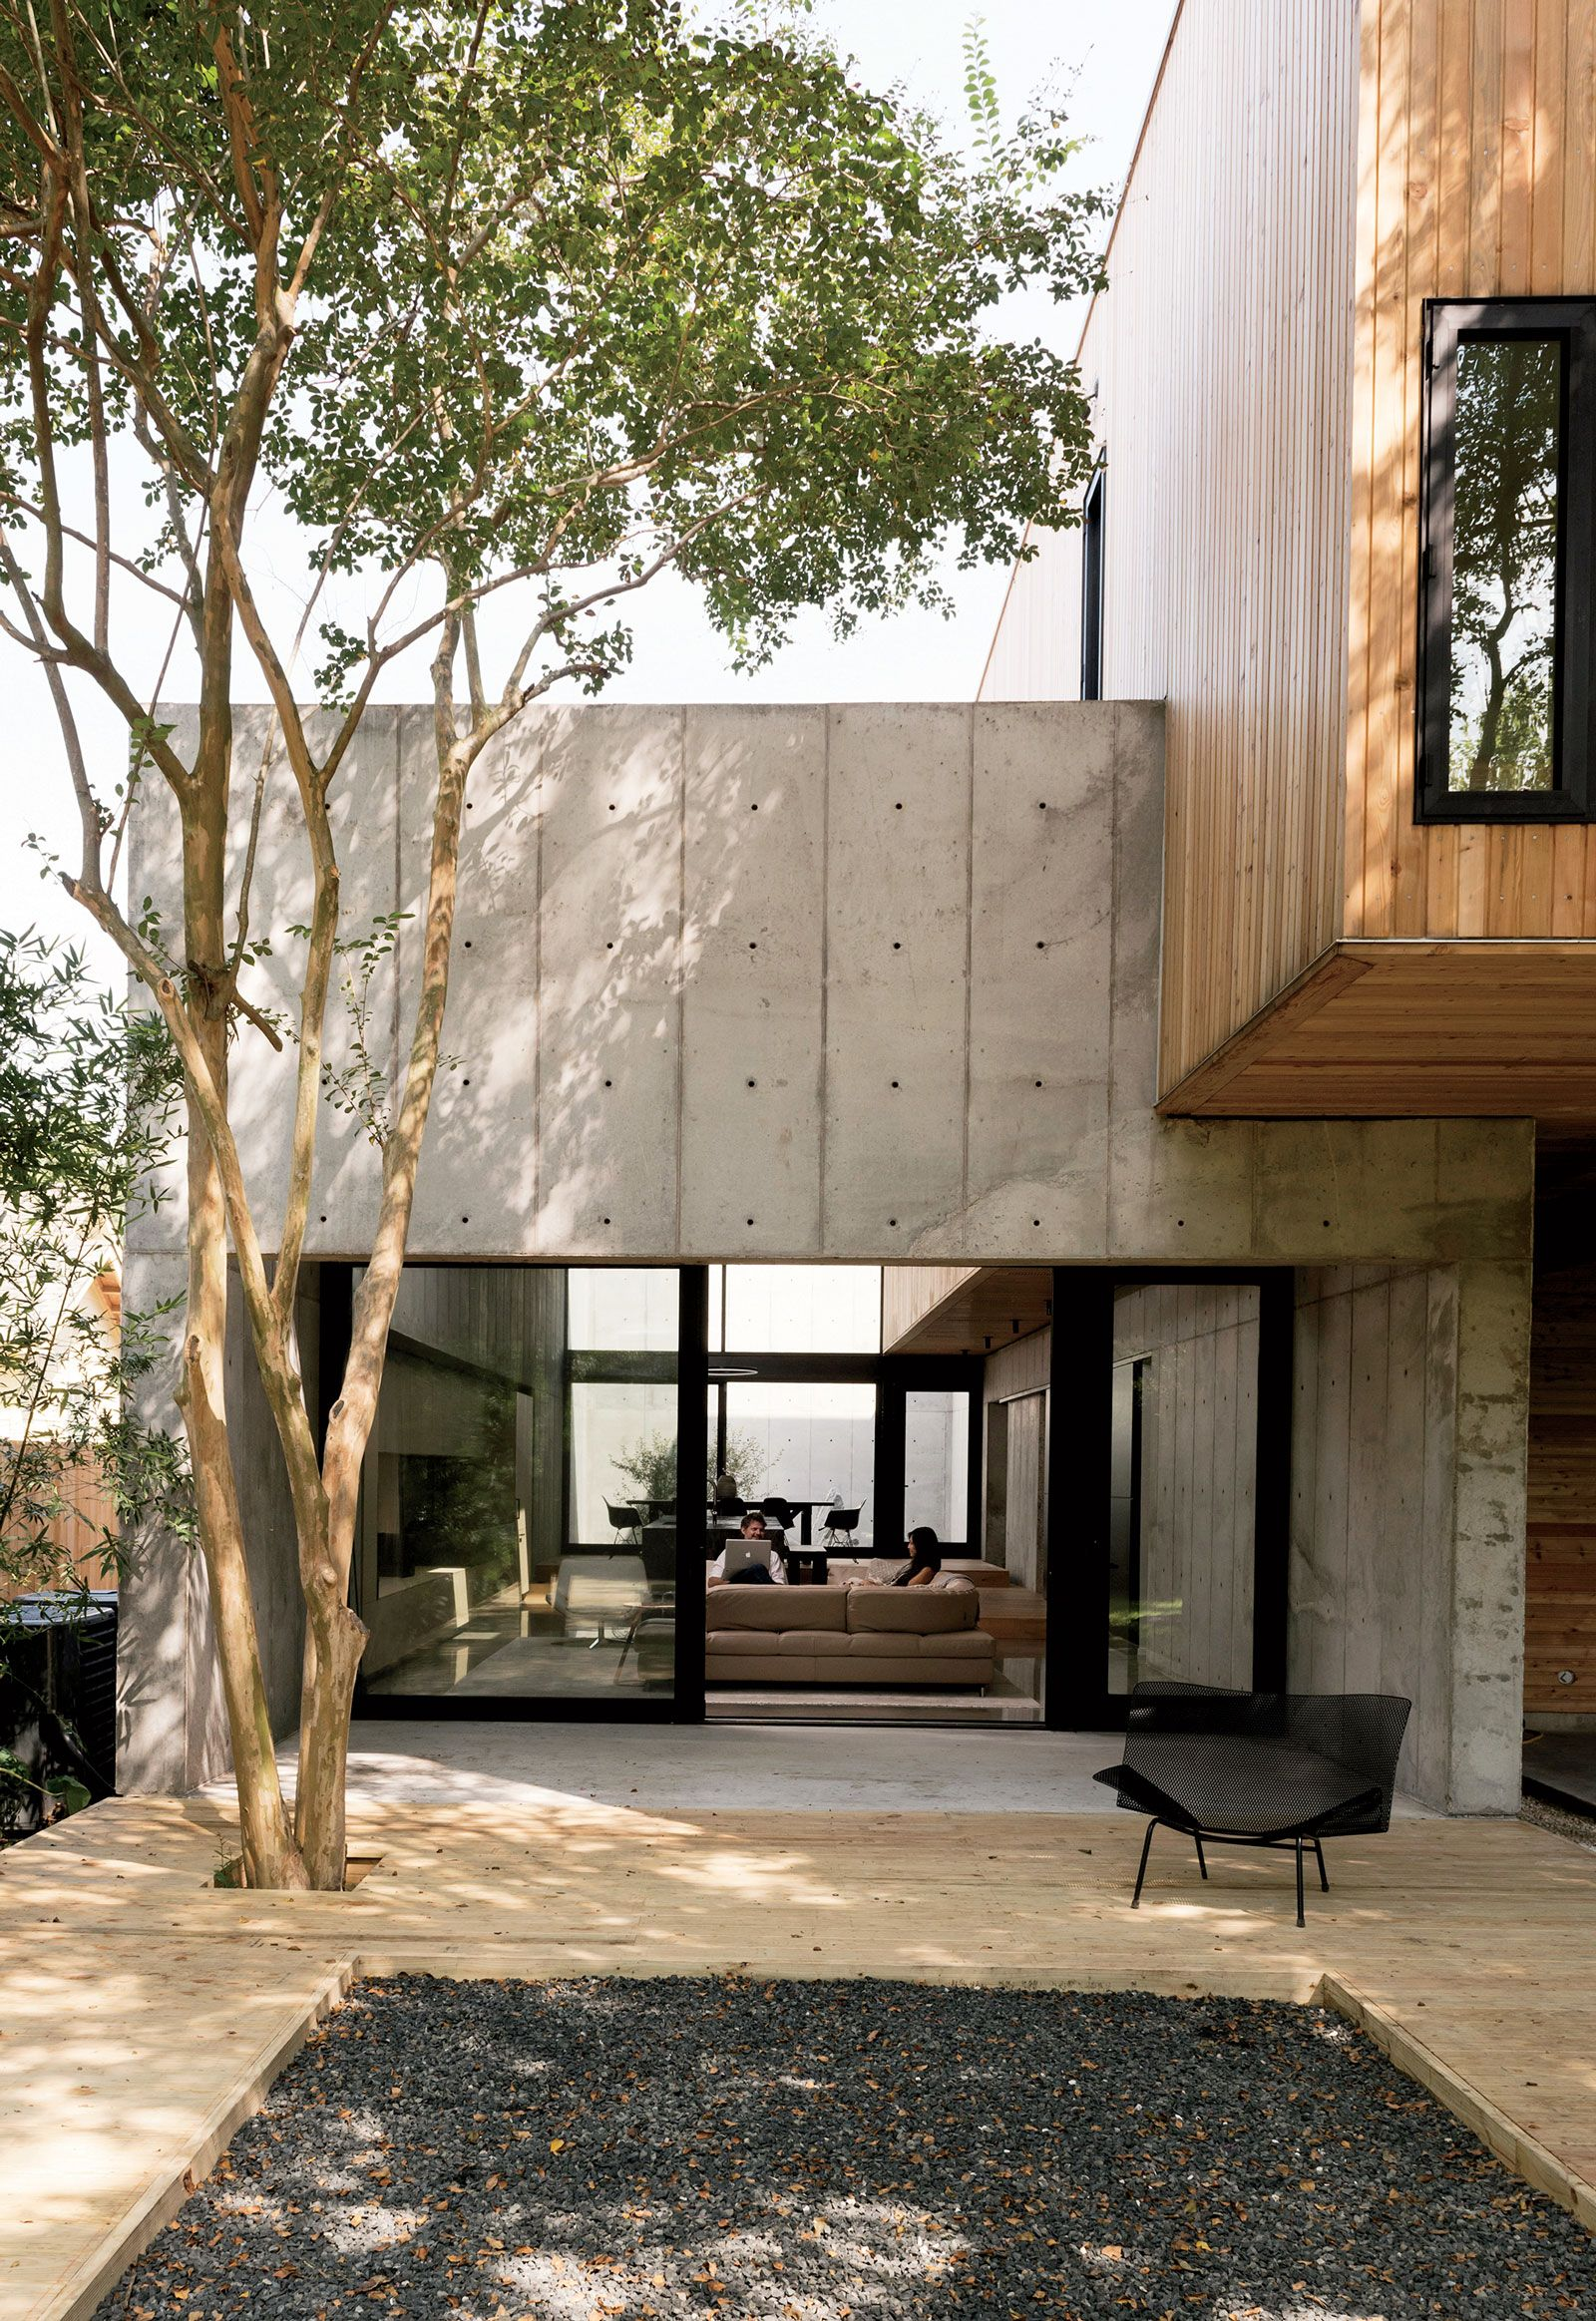 Modern window house design  modern texas home outdoor deck and living room with western window